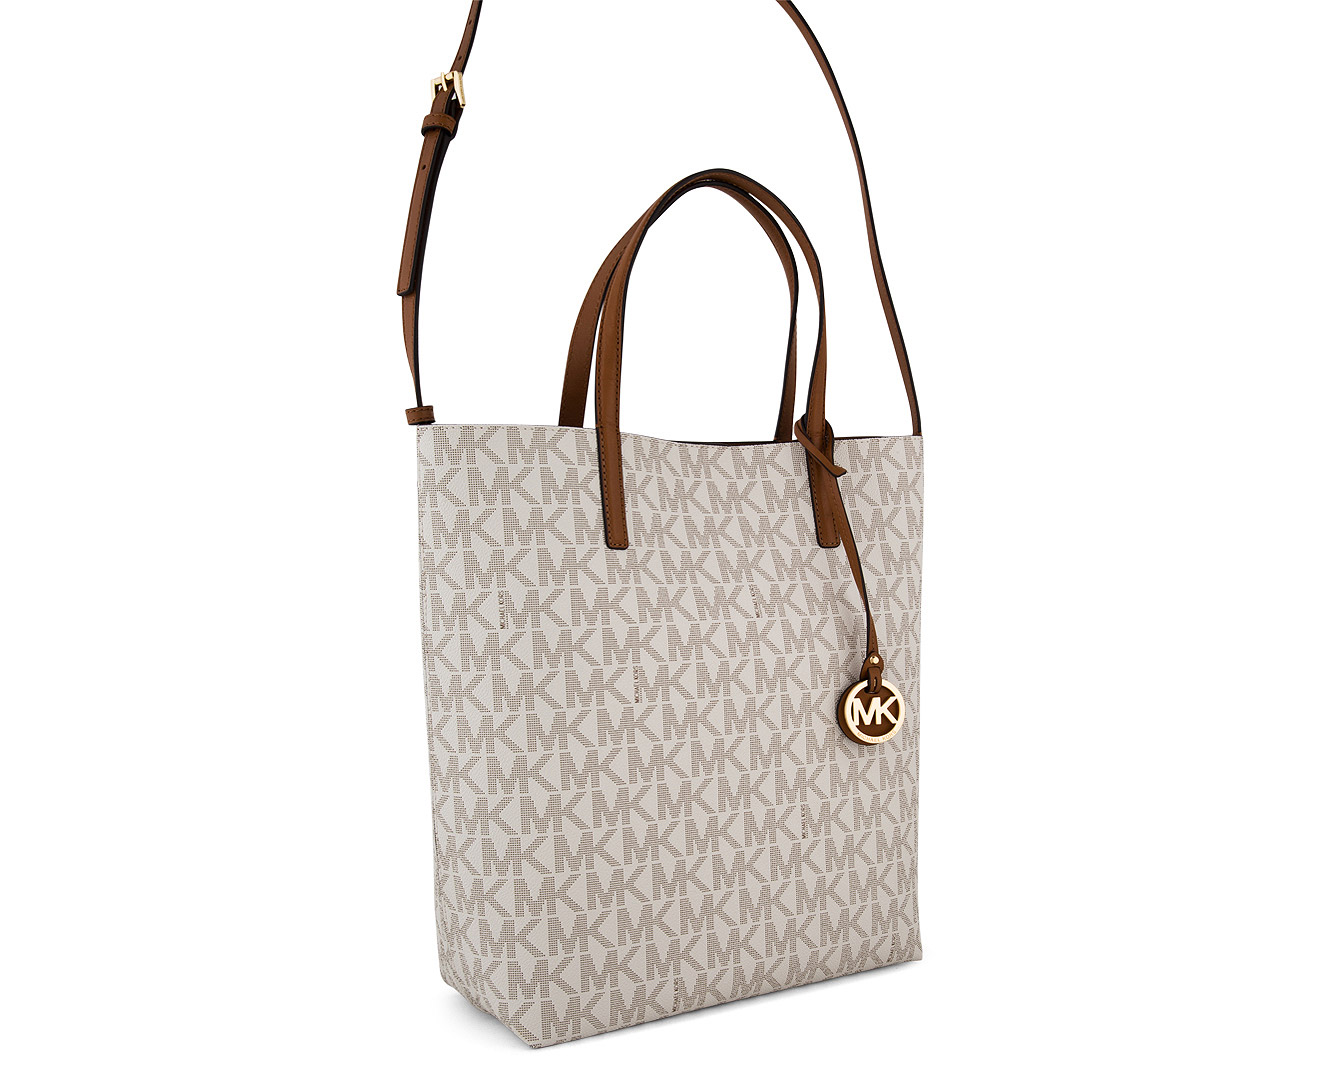 ca69452ab1ef Michael Kors Hayley Large Logo North-South Tote Bag - Vanilla/Acorn |  Catch.com.au